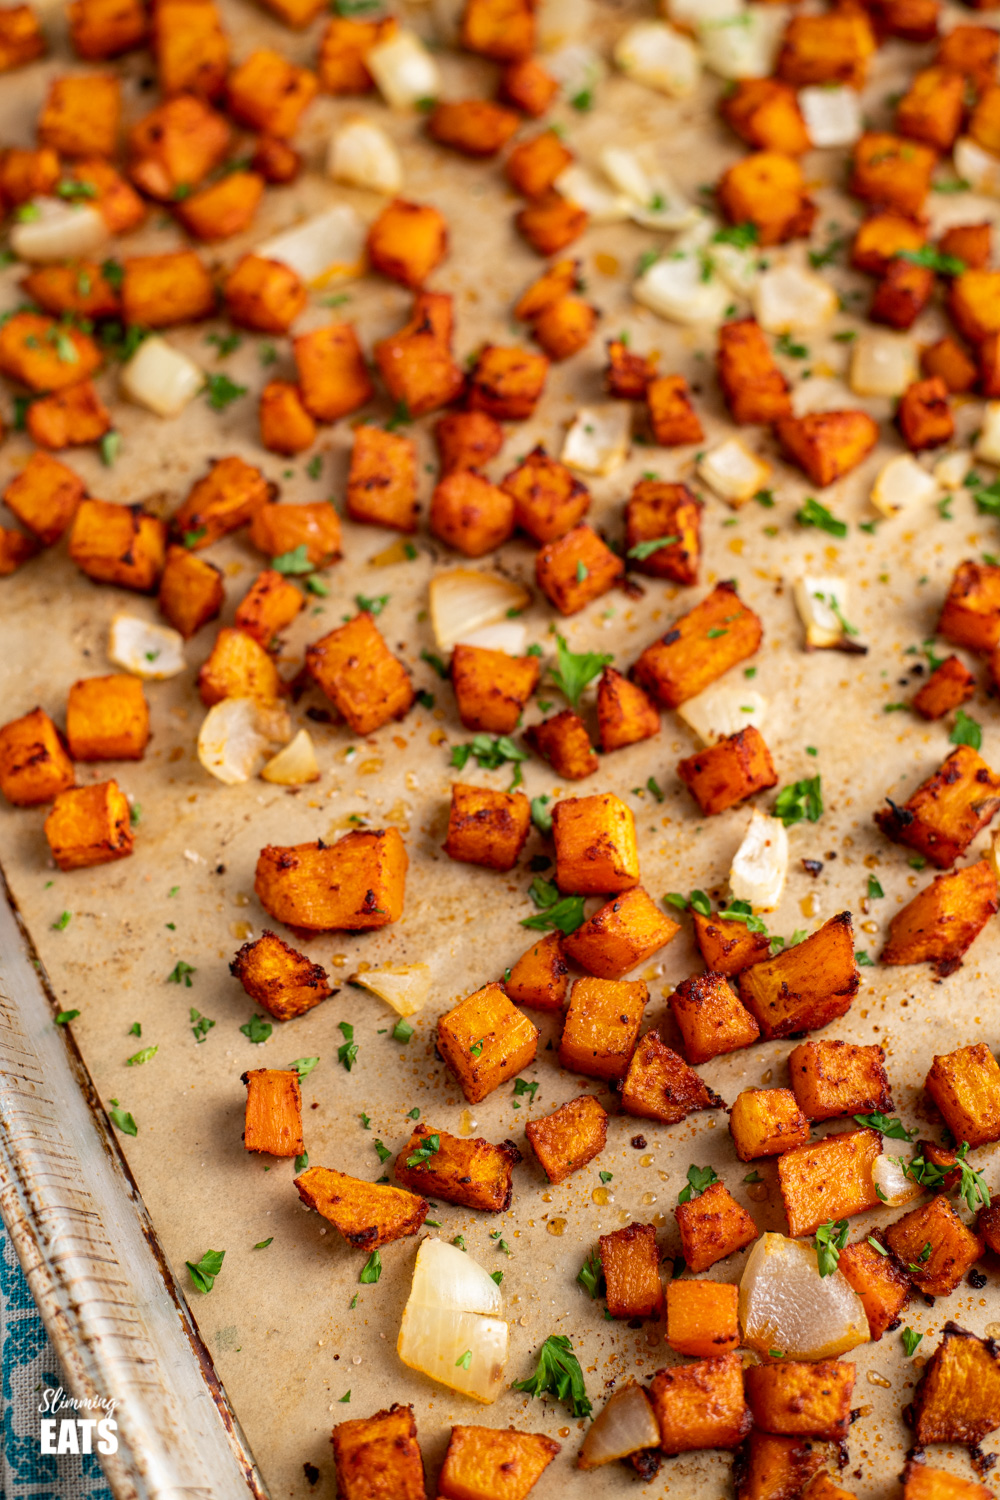 close up of seasoned roasted butternut squash on baking tray lined with parchment